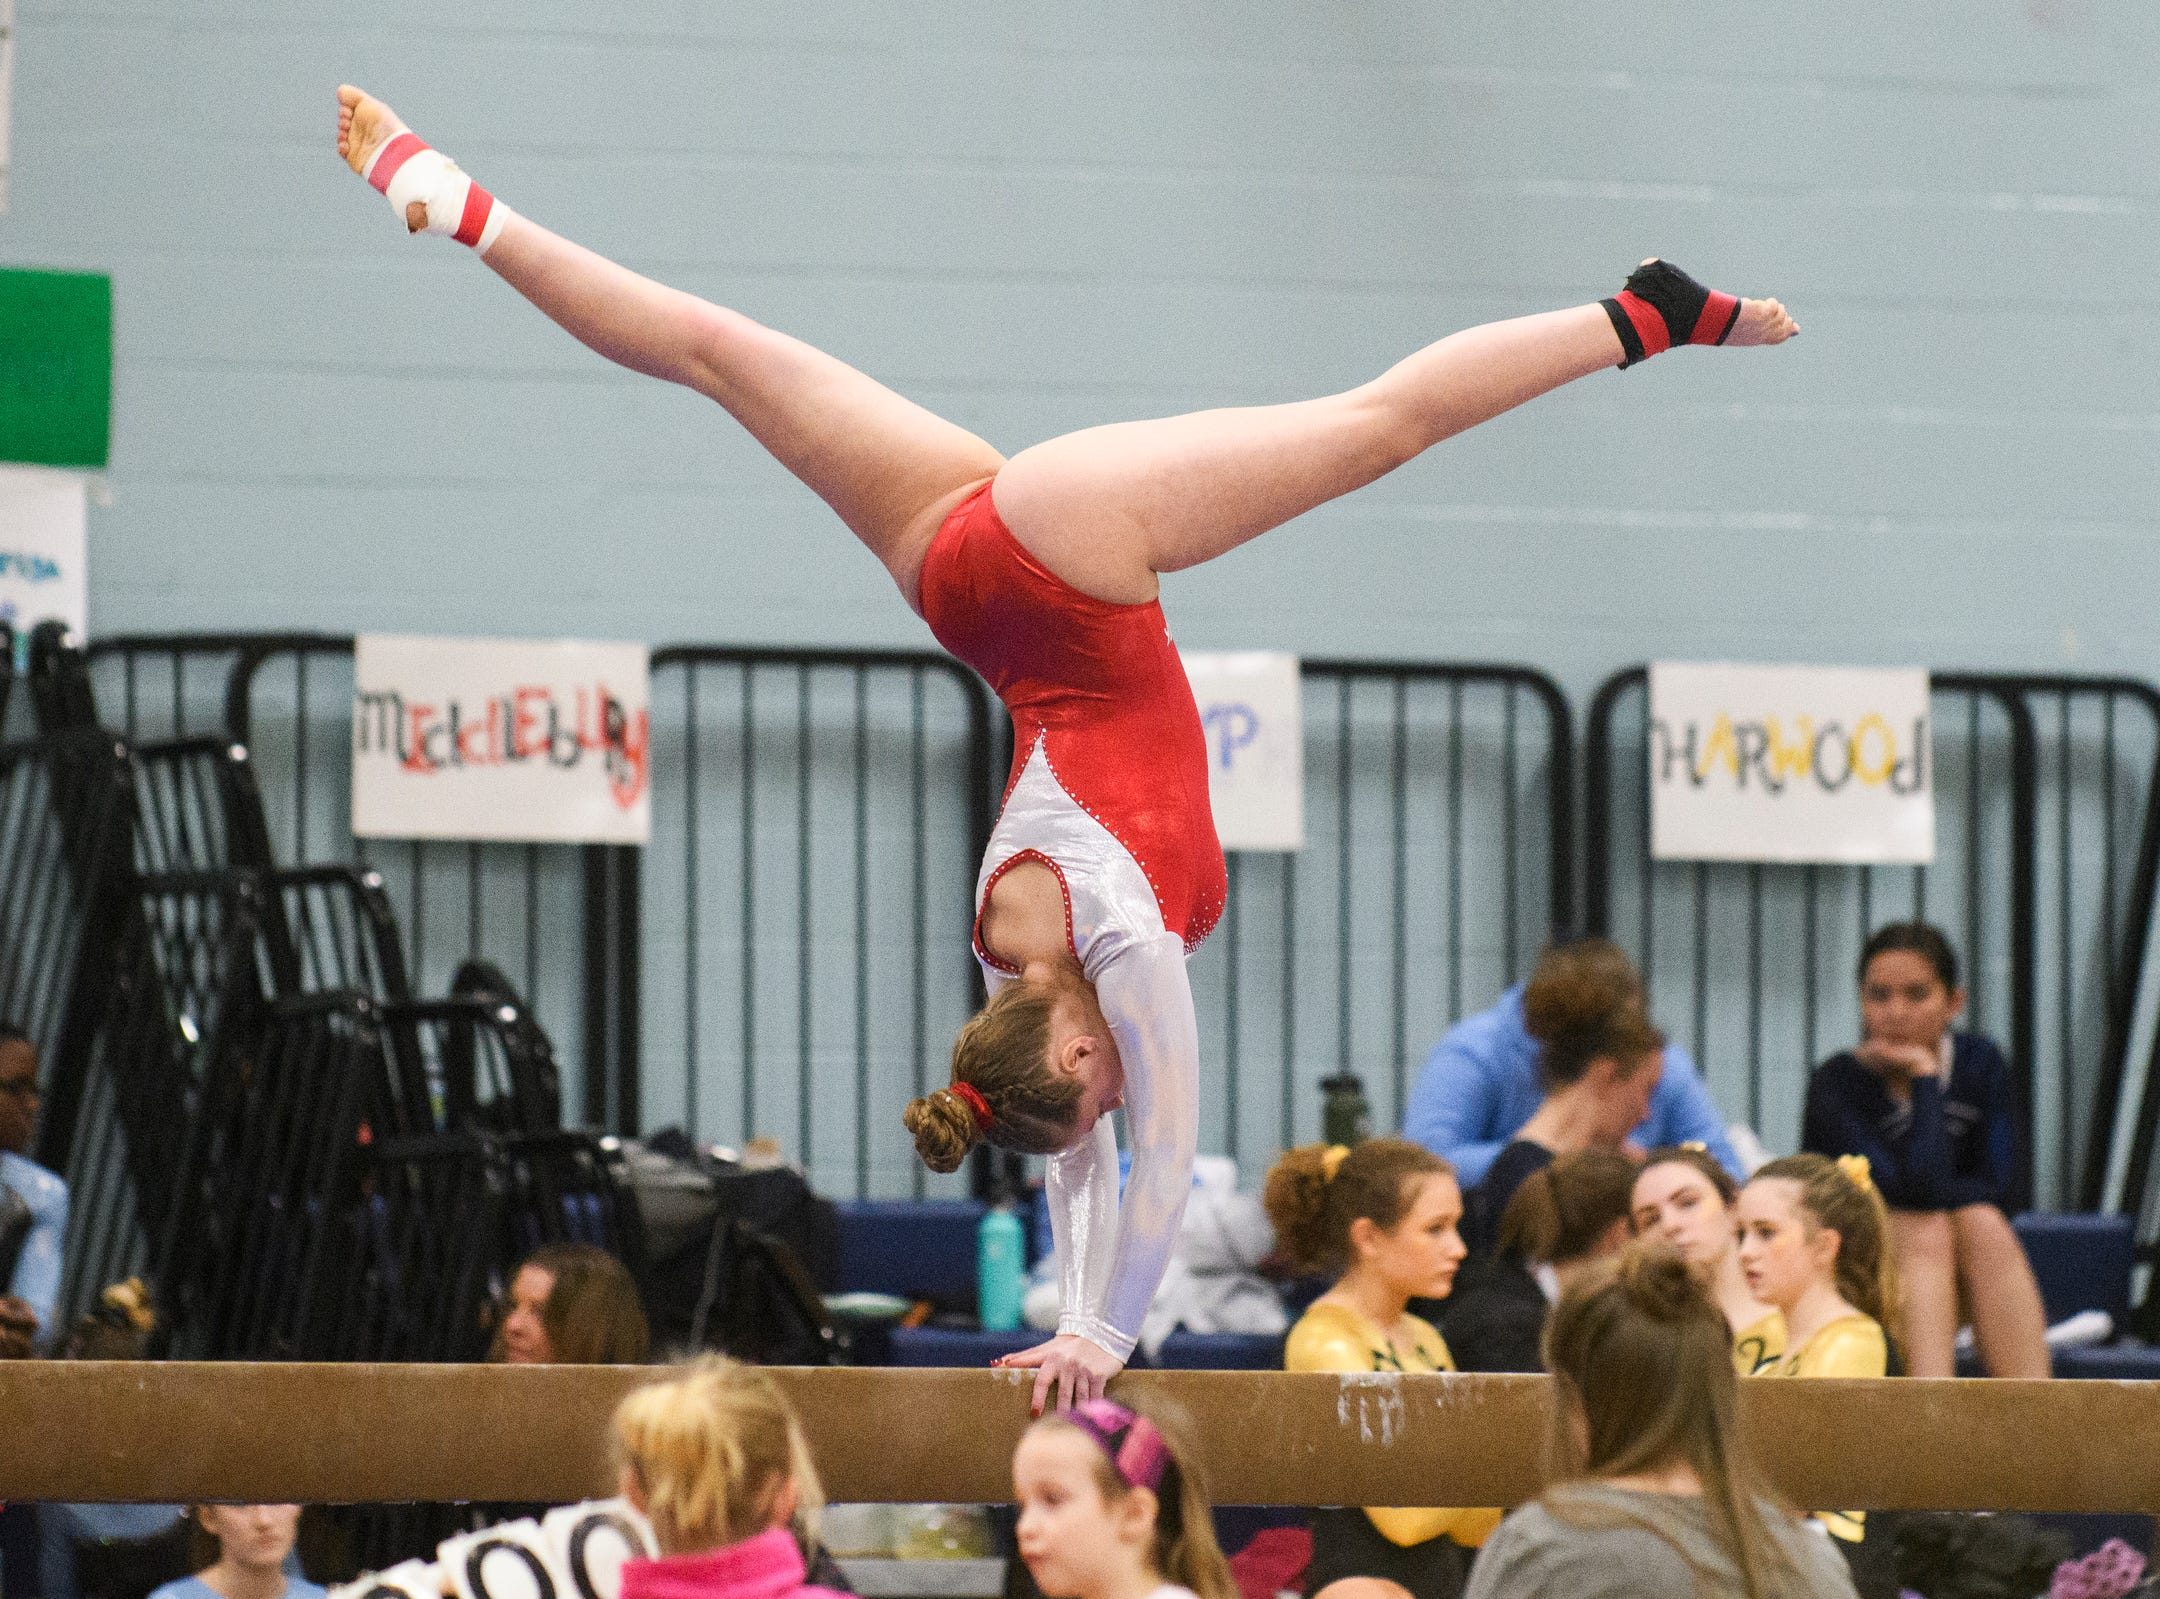 CVU's Alex St. Hilaire competes in the bar during the 2019 high school gymnastics championship at Essex High School on Saturday afternoon February 16, 2019 in Essex, Vermont.